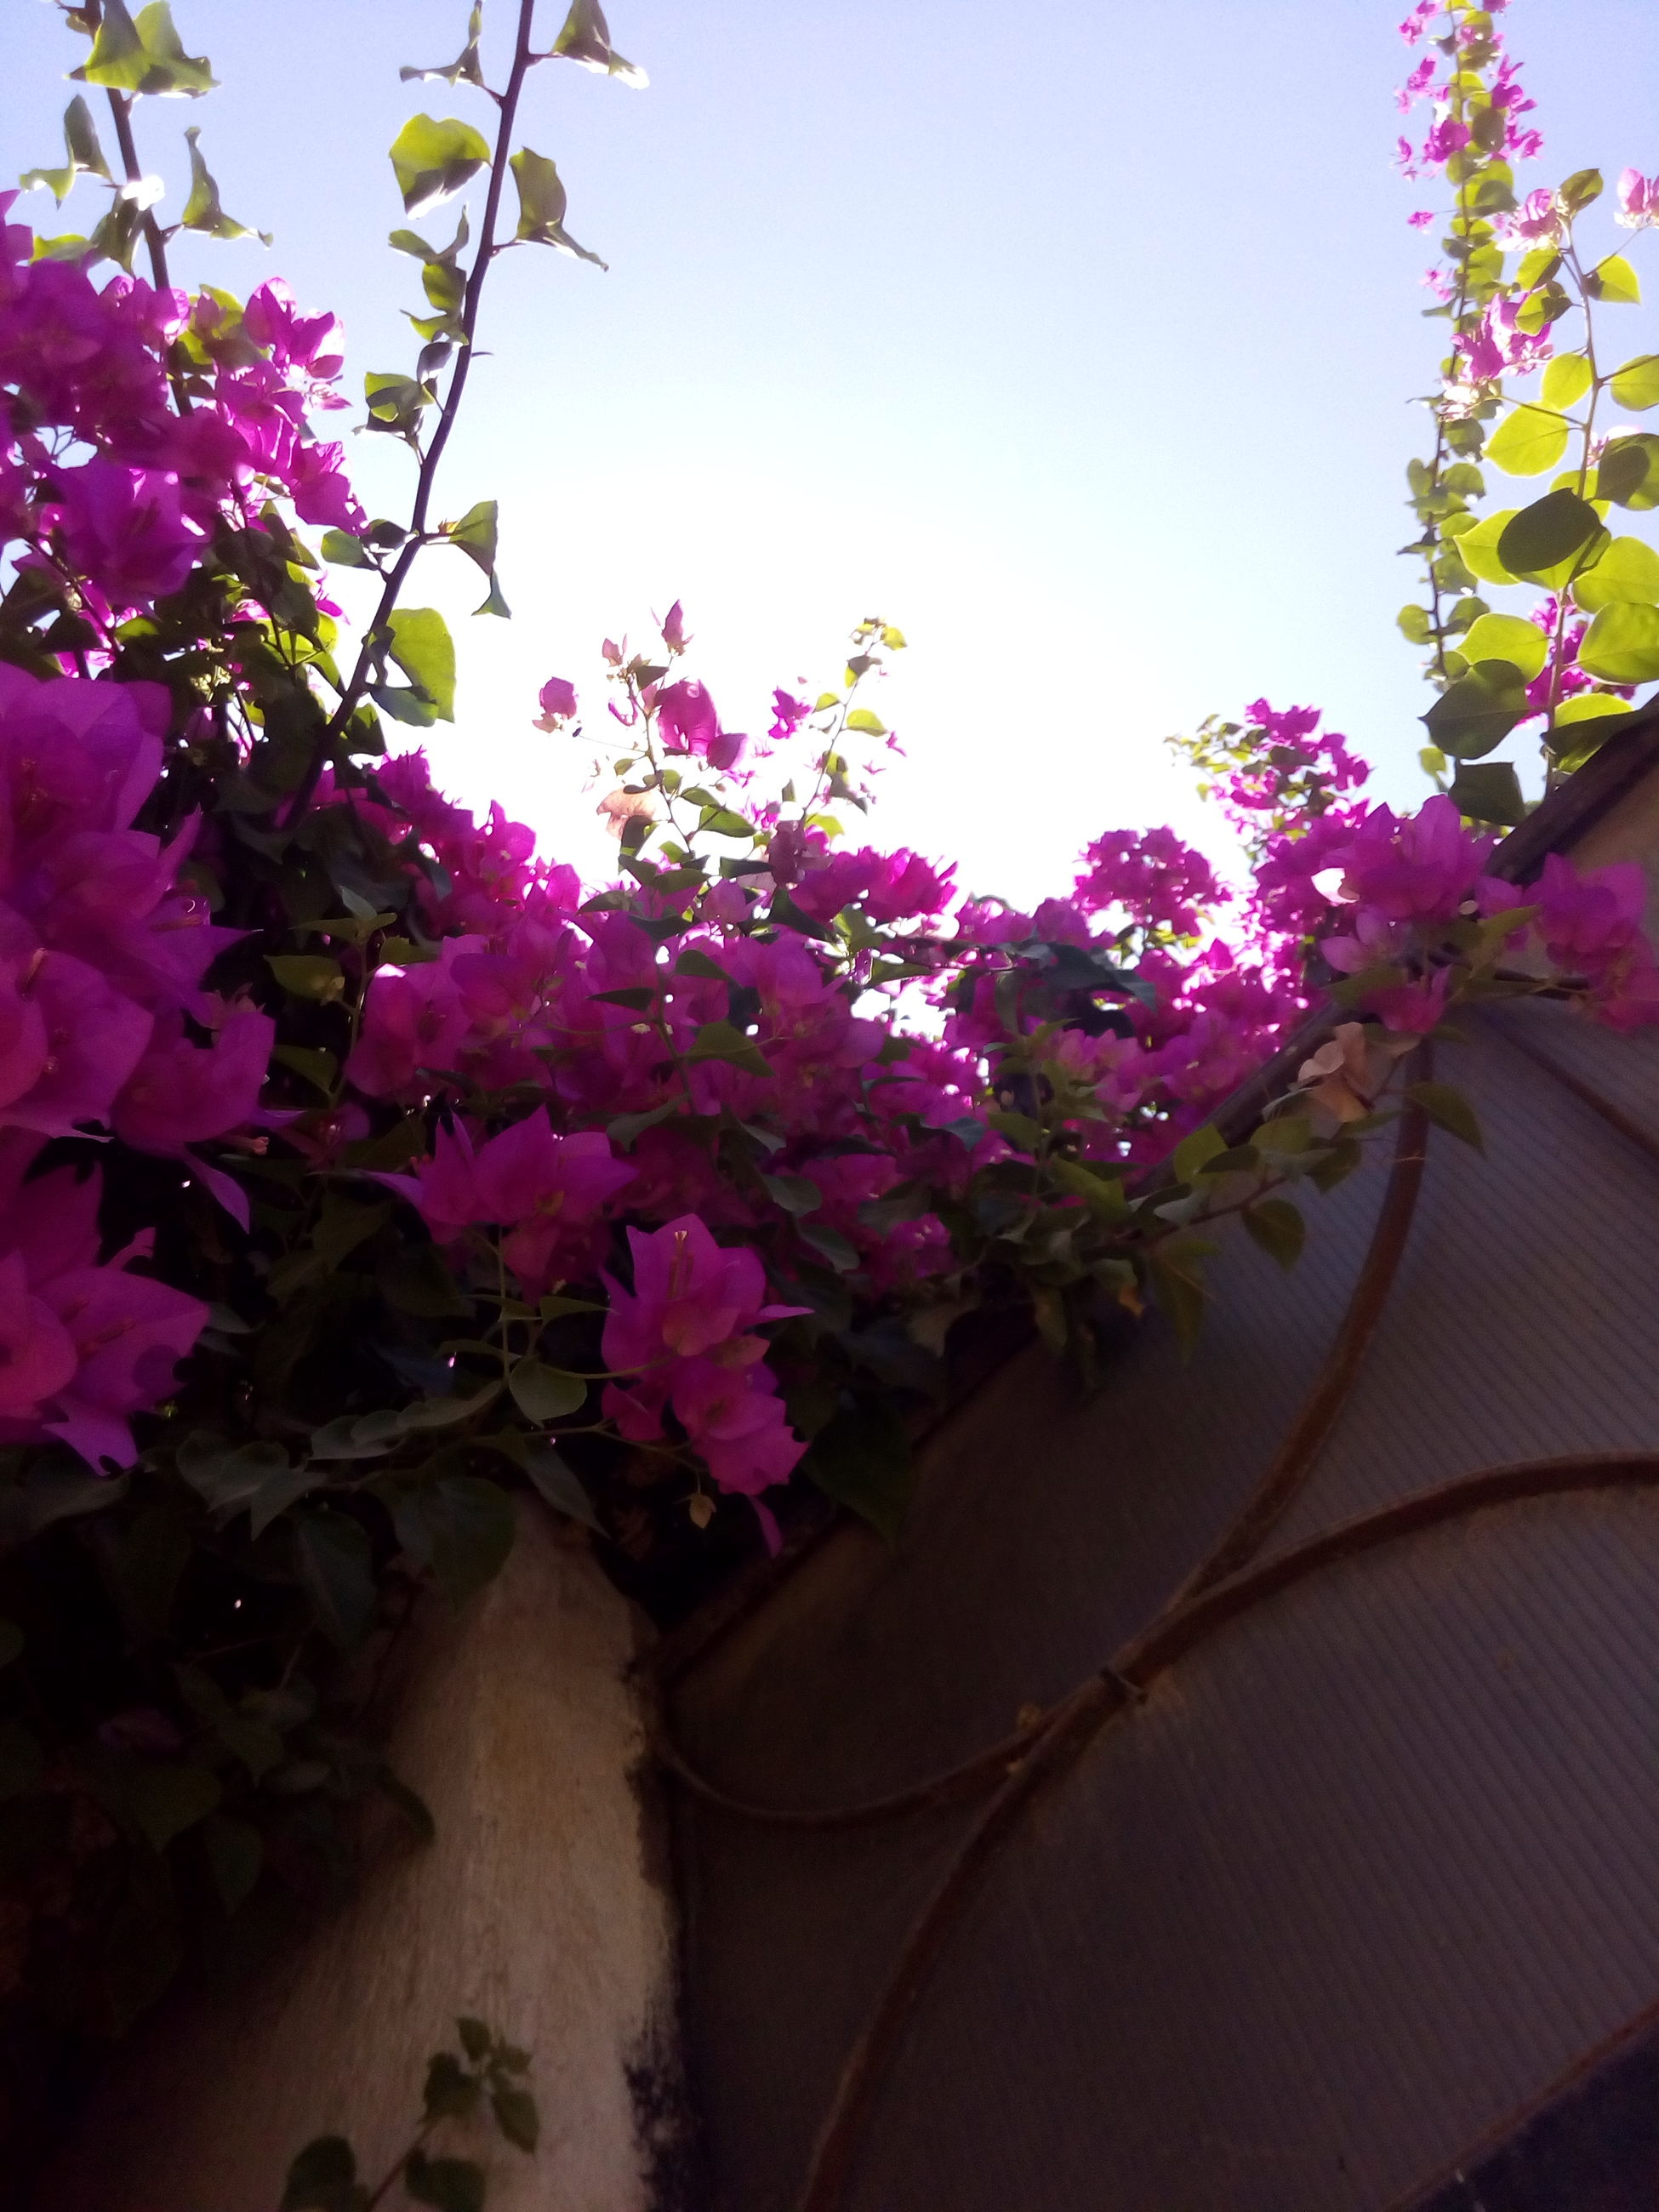 flower, freshness, pink color, growth, fragility, petal, beauty in nature, nature, blooming, plant, clear sky, blossom, purple, in bloom, sunlight, pink, flower head, tree, close-up, day